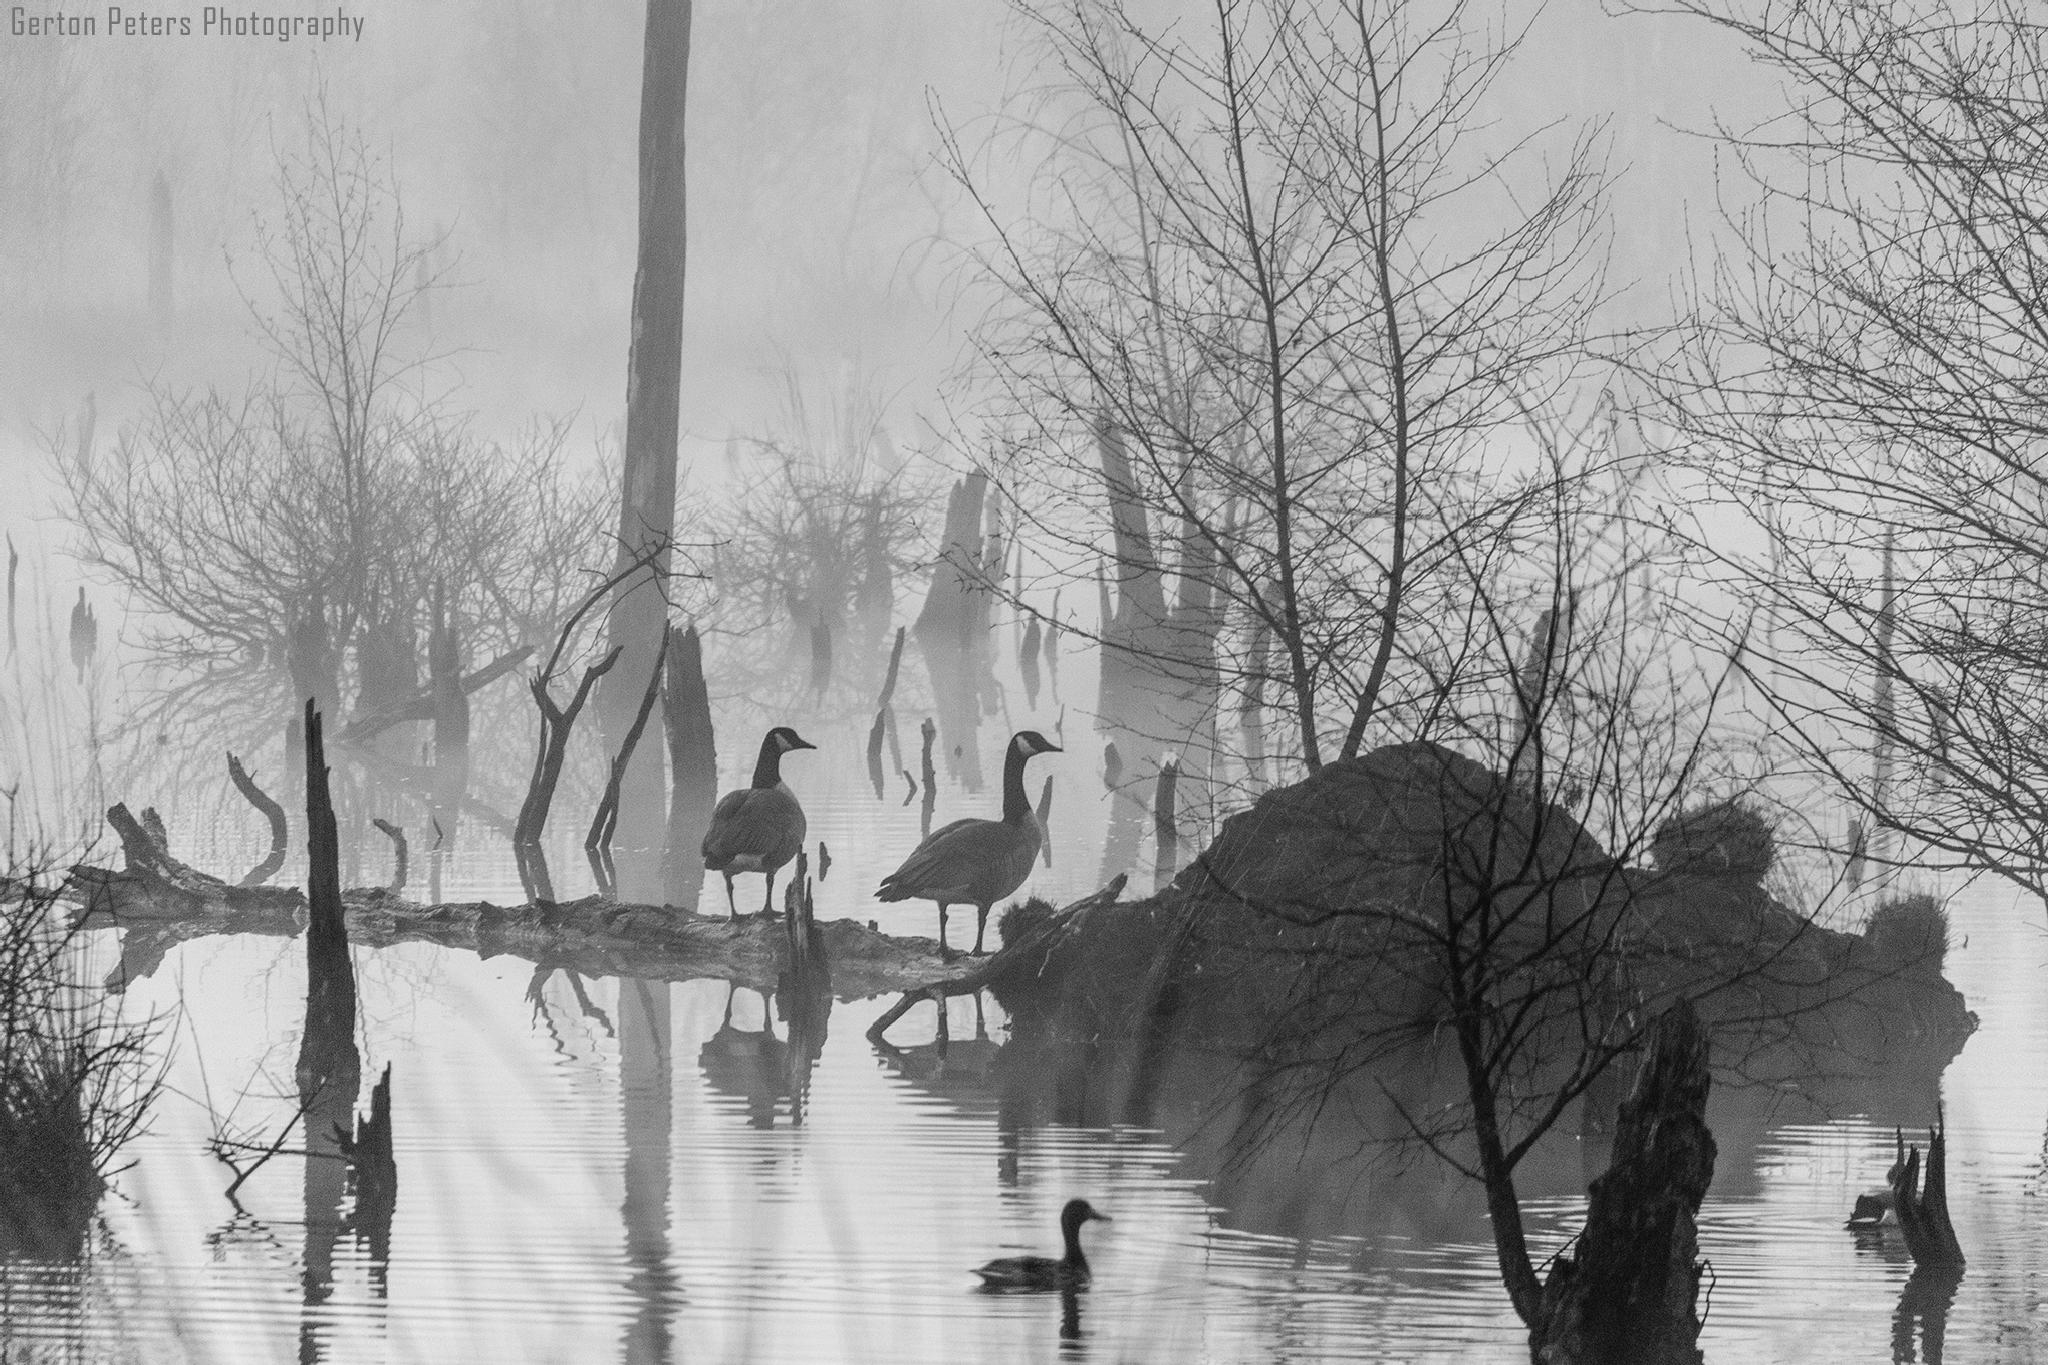 Geese in the fog by Gerton Peters